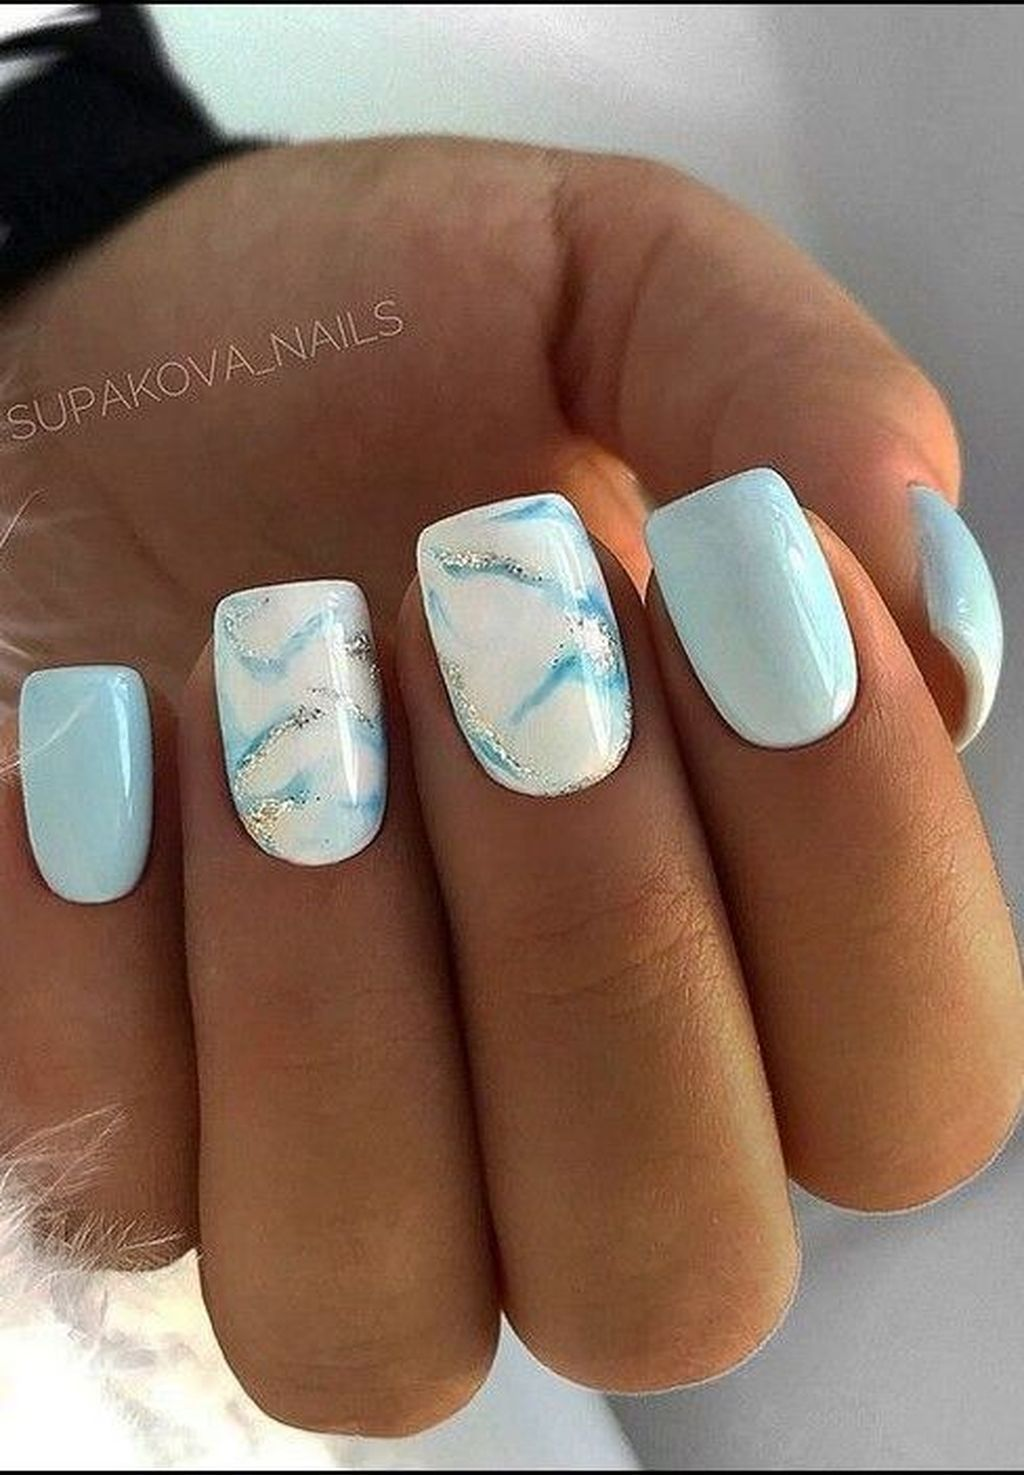 39 Unique Summer Nail Designs For Exceptional Look Short Acrylic Nails Designs Square Acrylic Nails Short Acrylic Nails